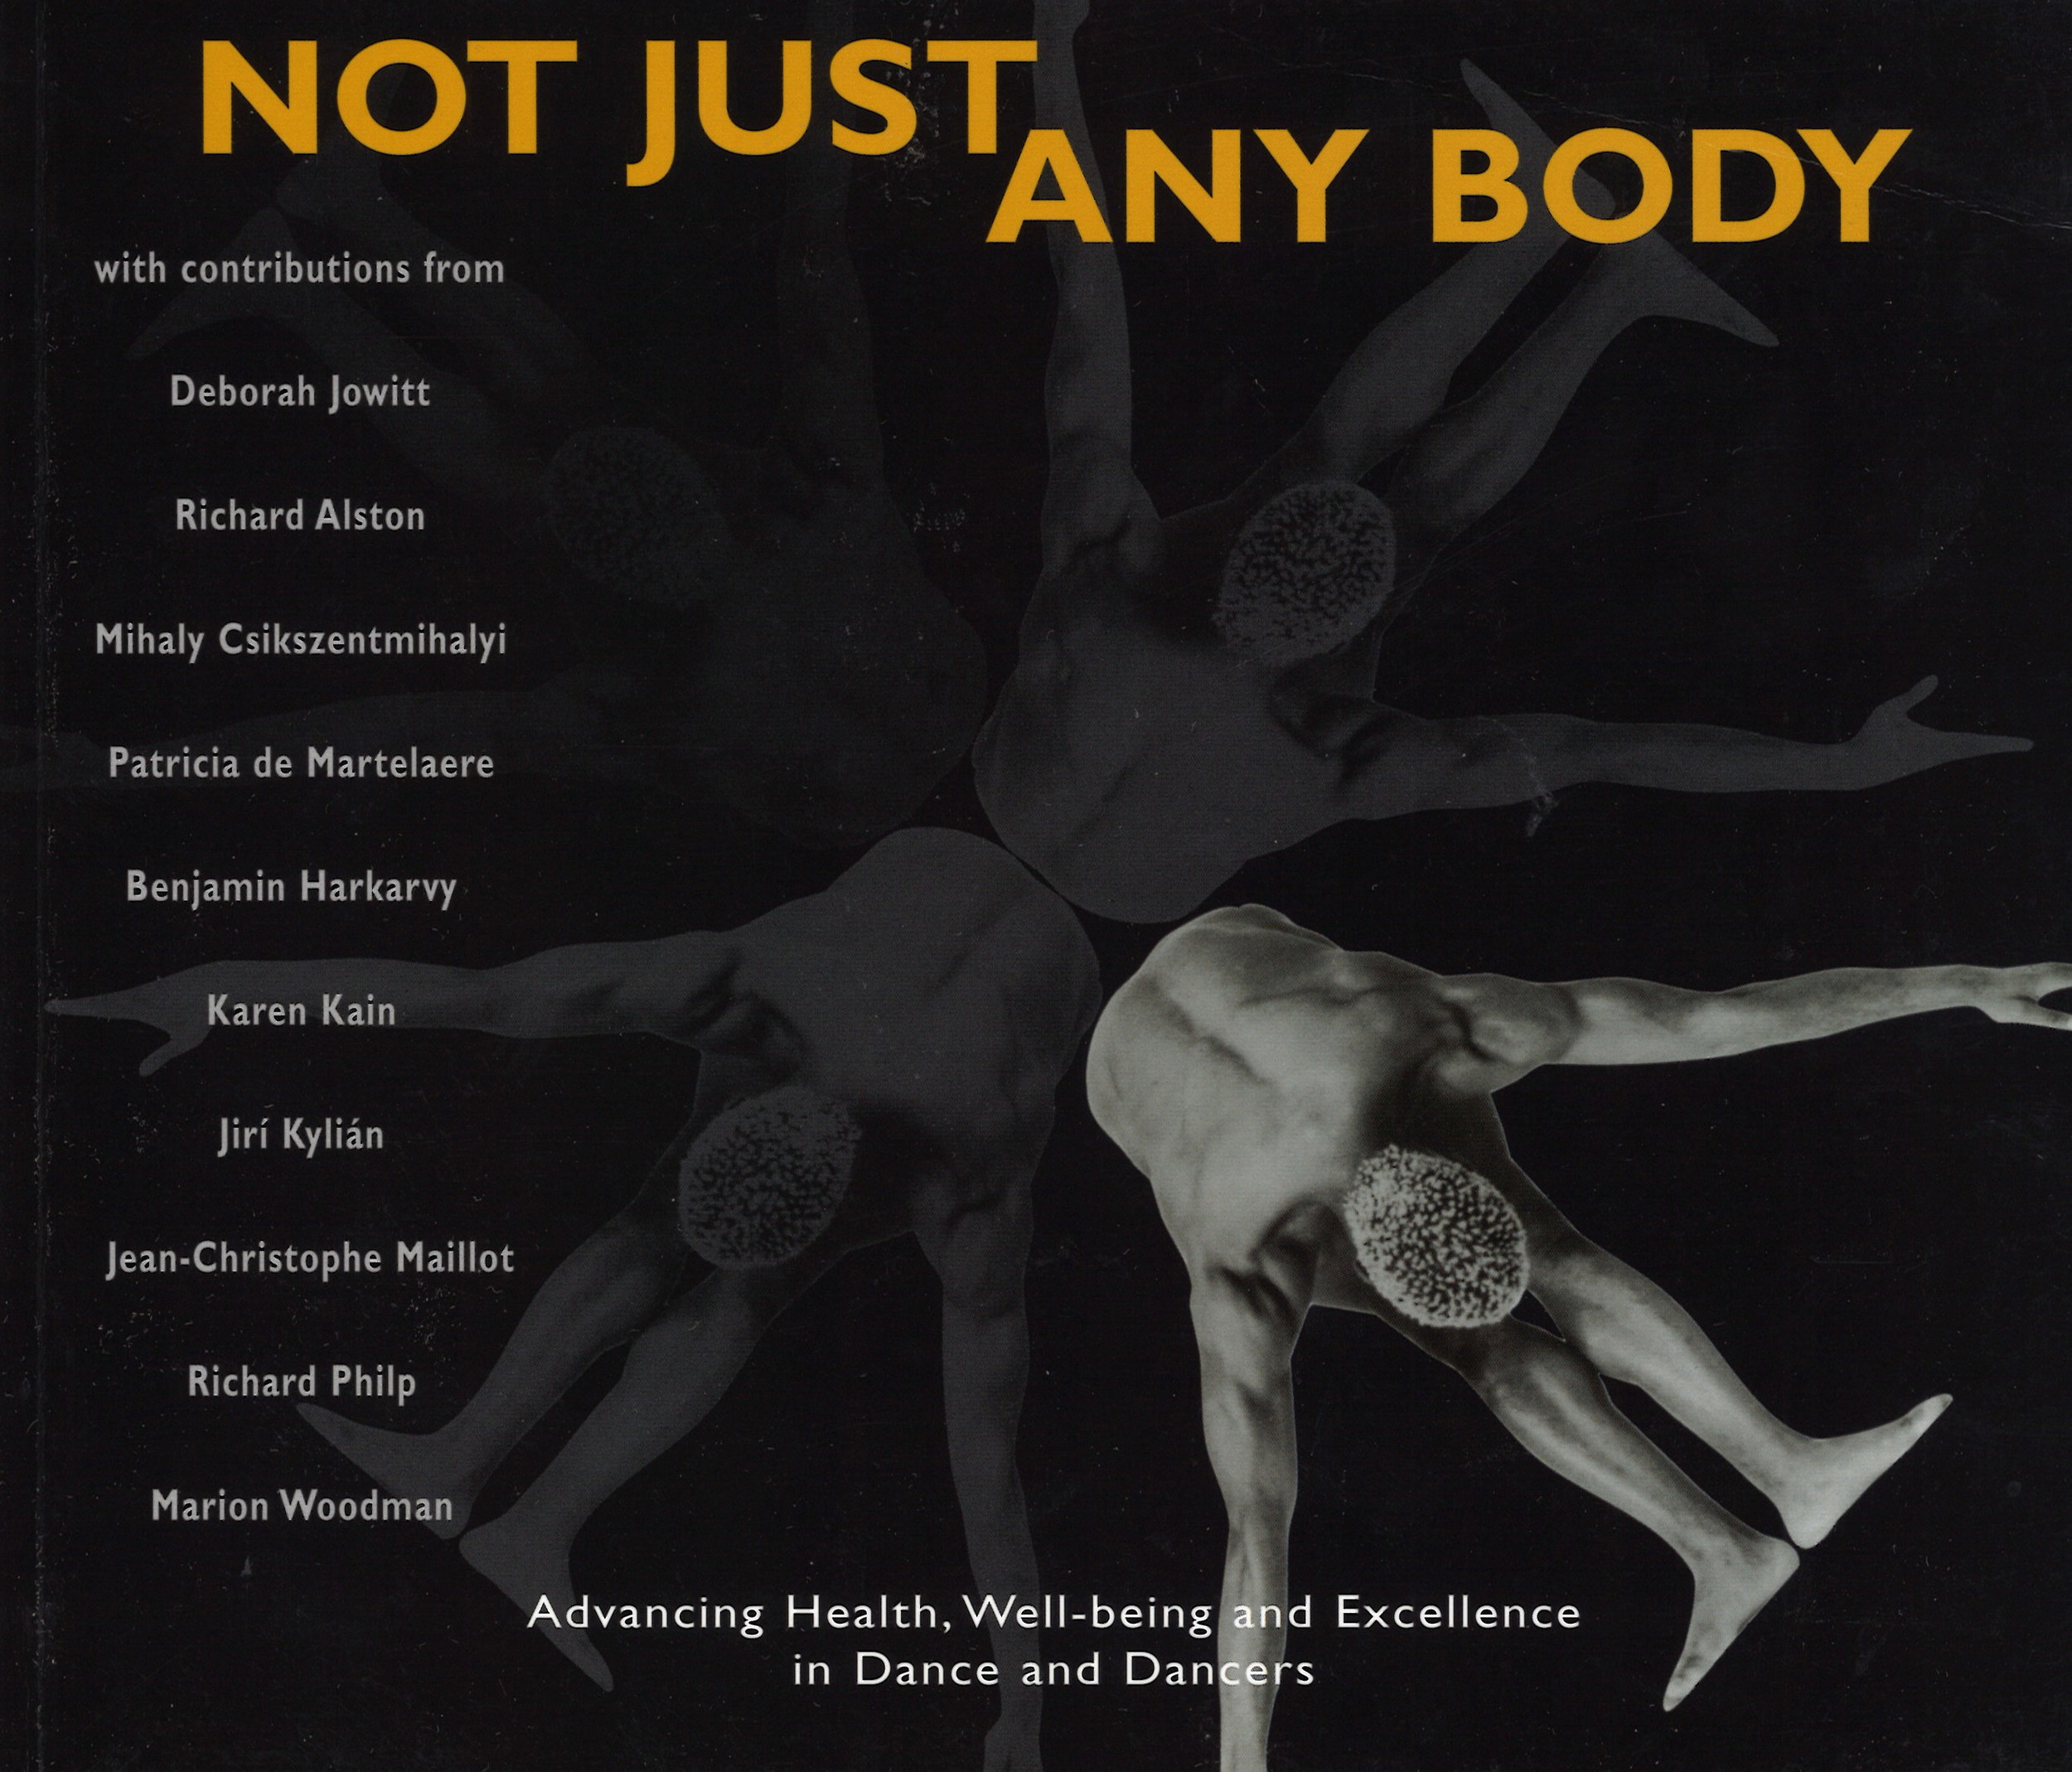 The book, Not Just Any Body,  waspublished one year after the conference.